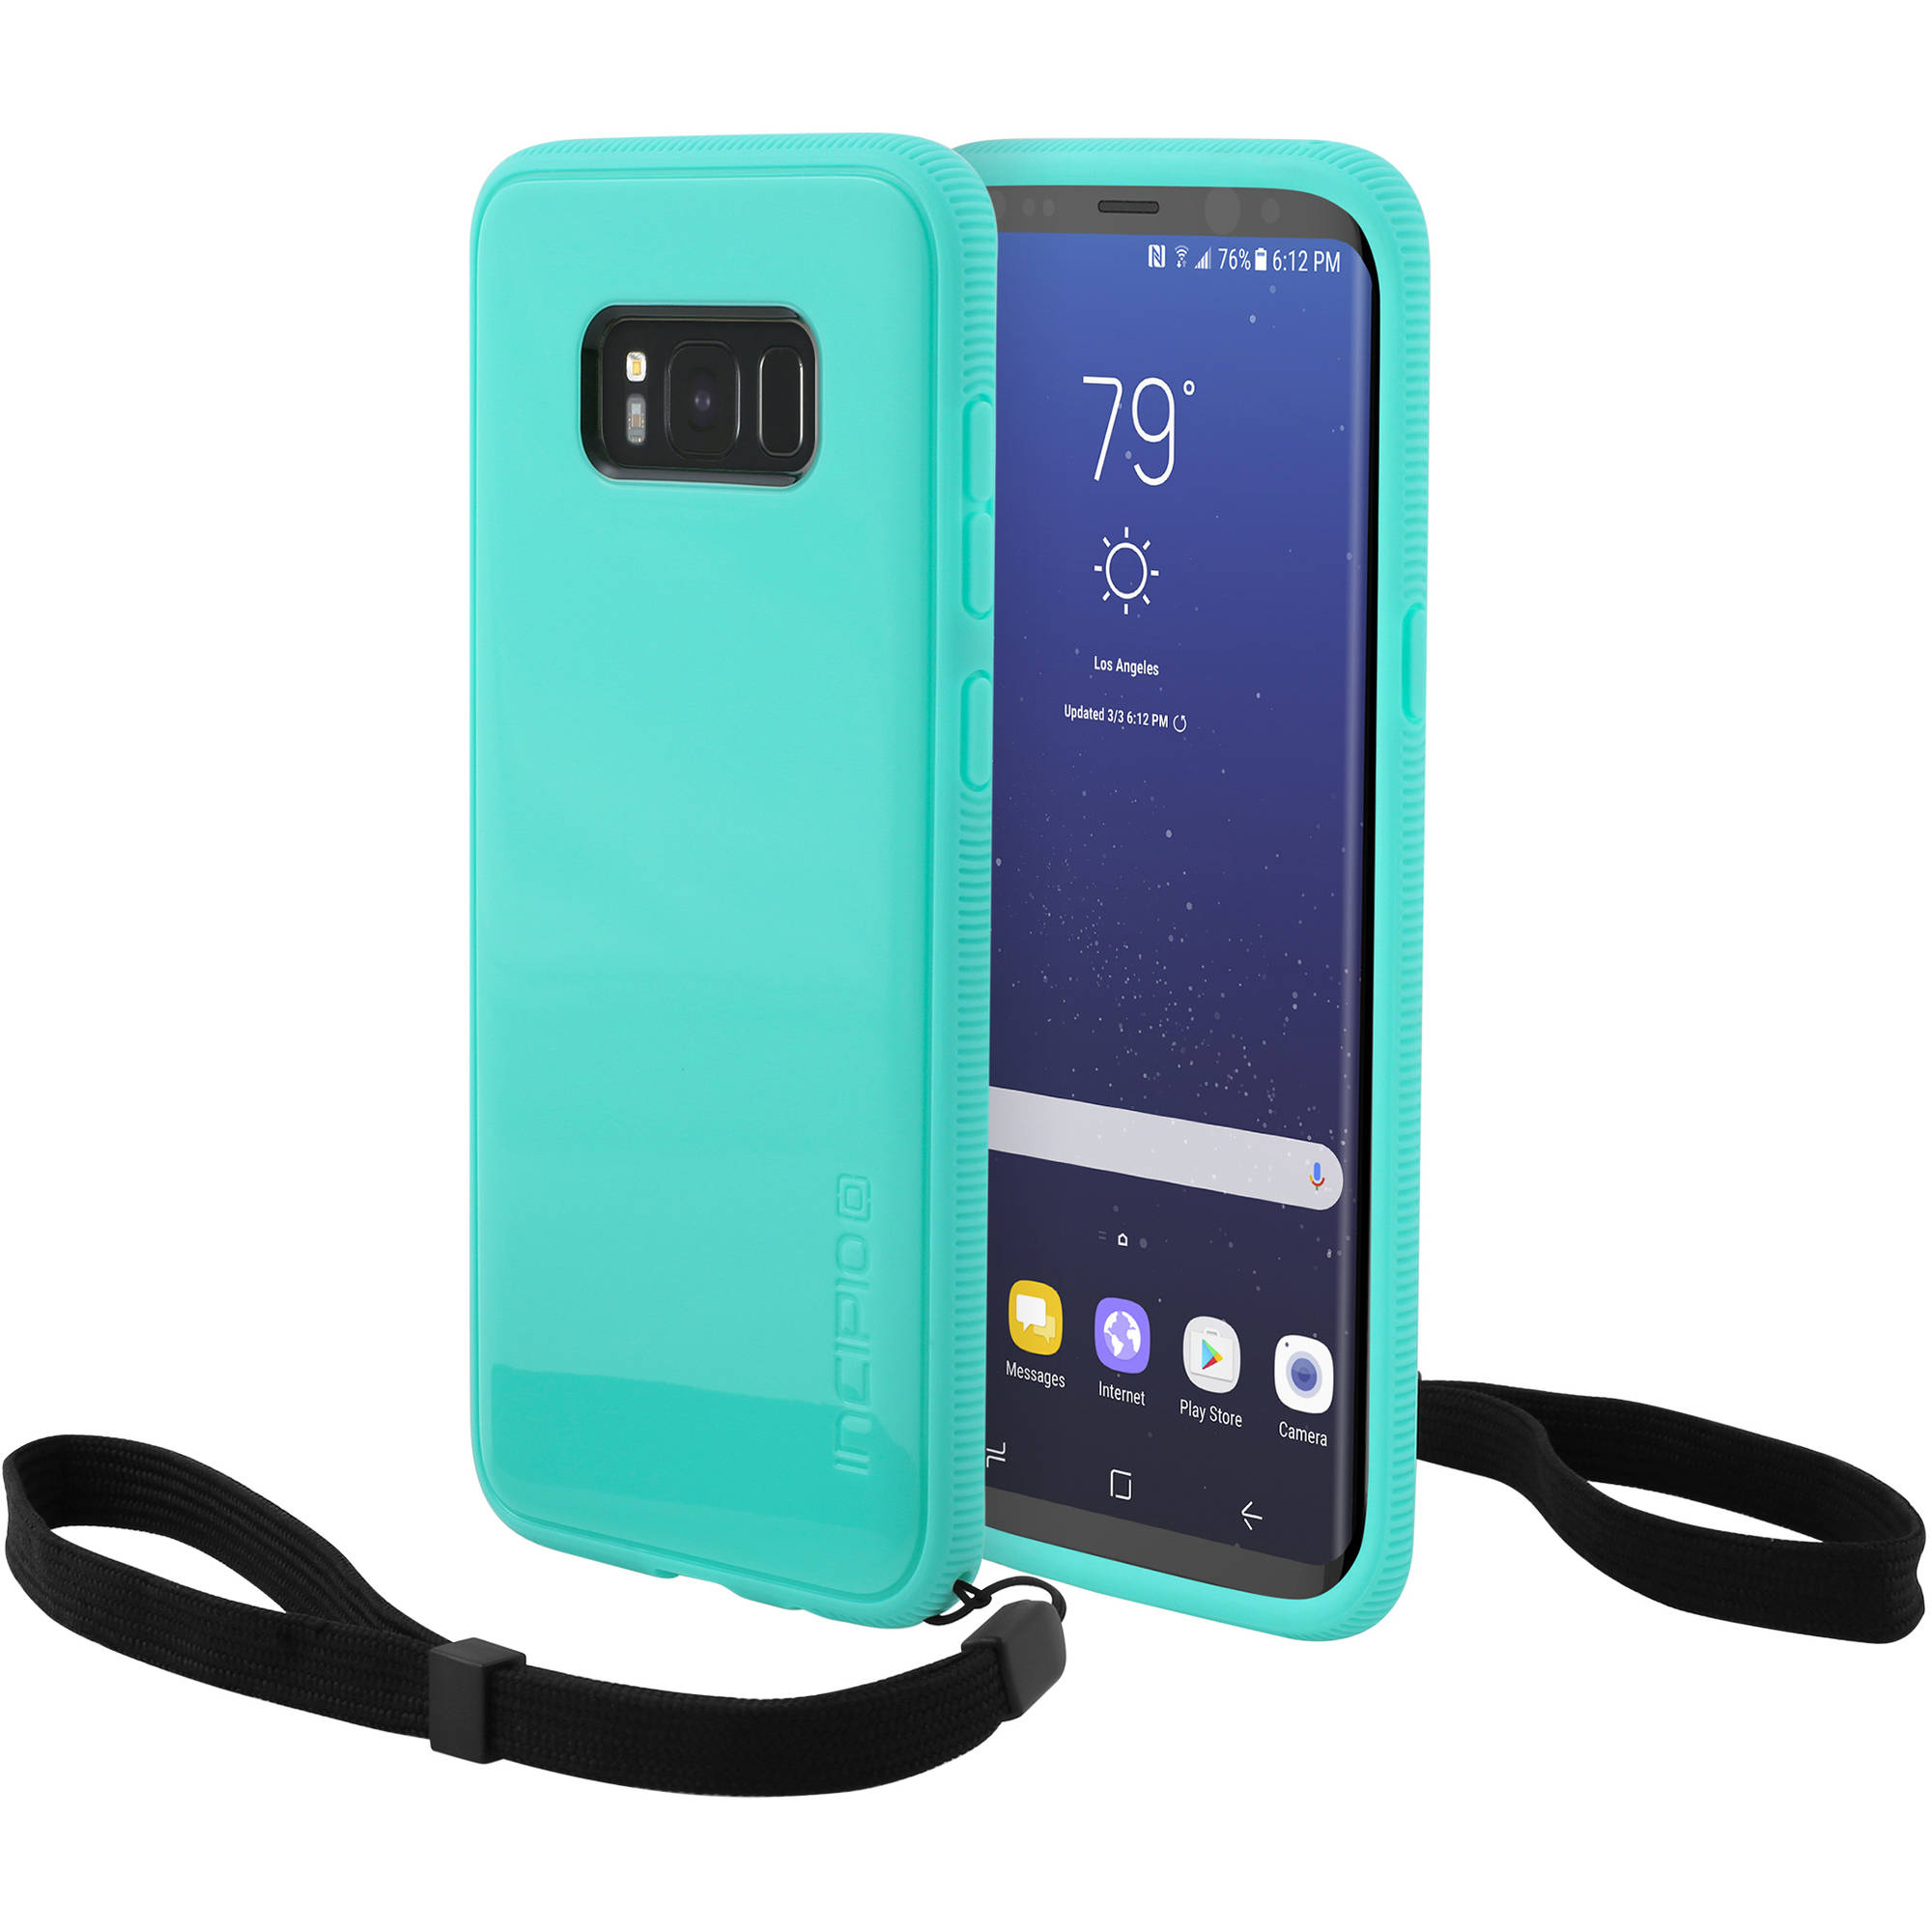 Incipio IControl Case for Samsung Galazy S8+